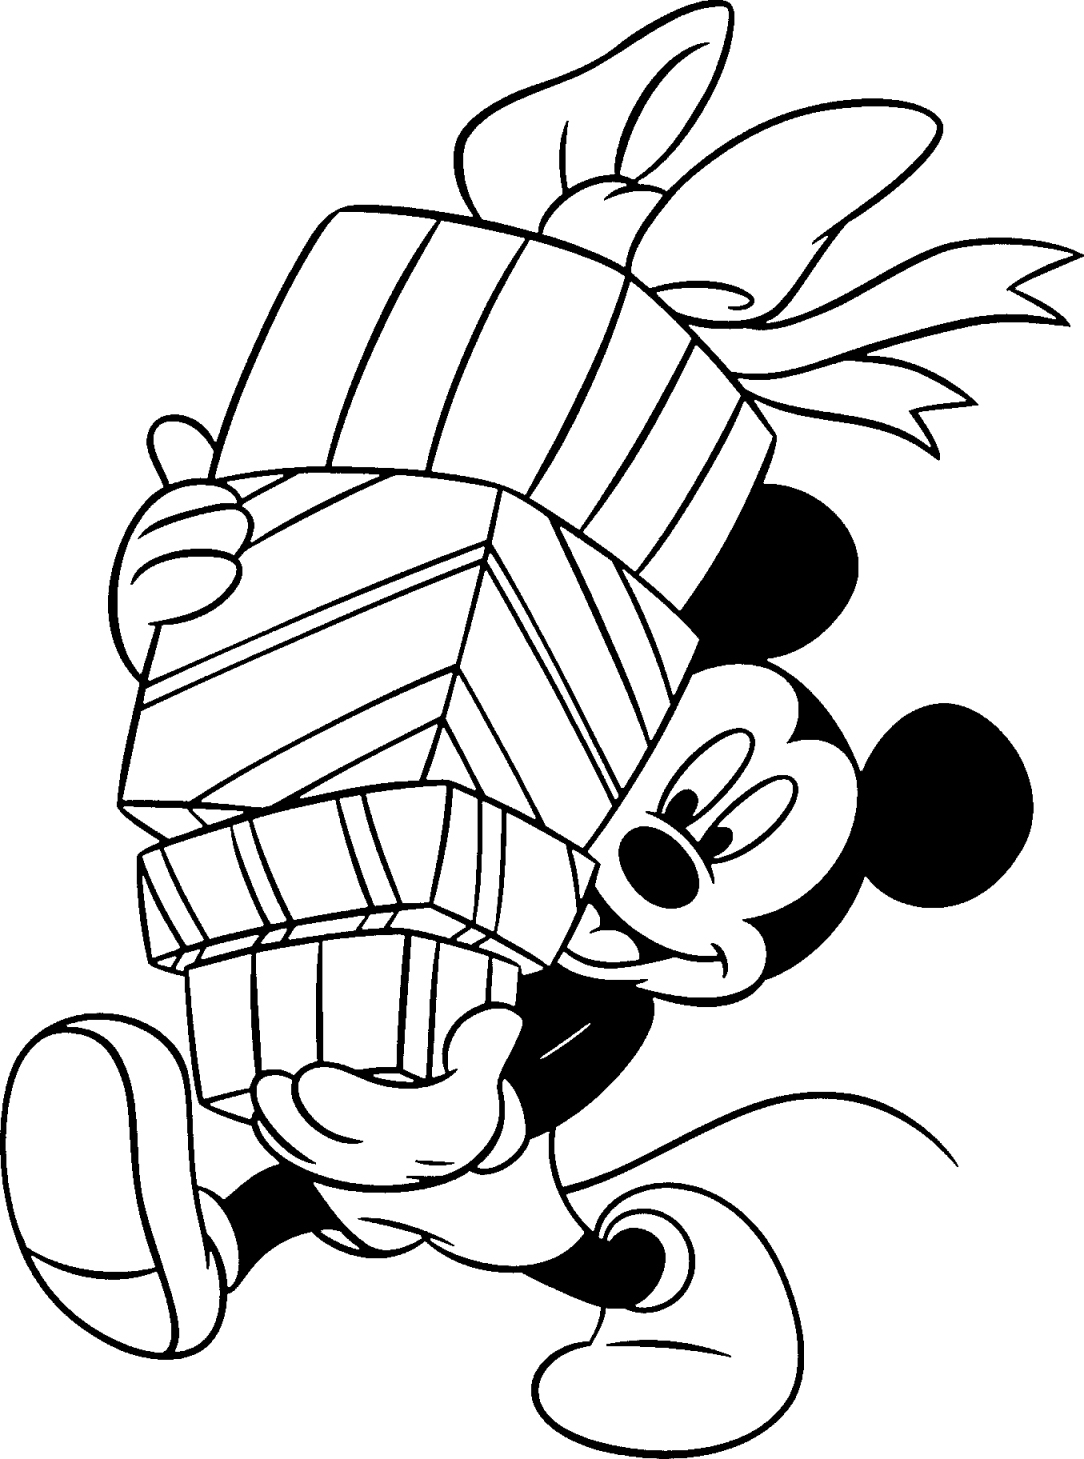 1084x1459 Disney Winter Coloring Pages Archives